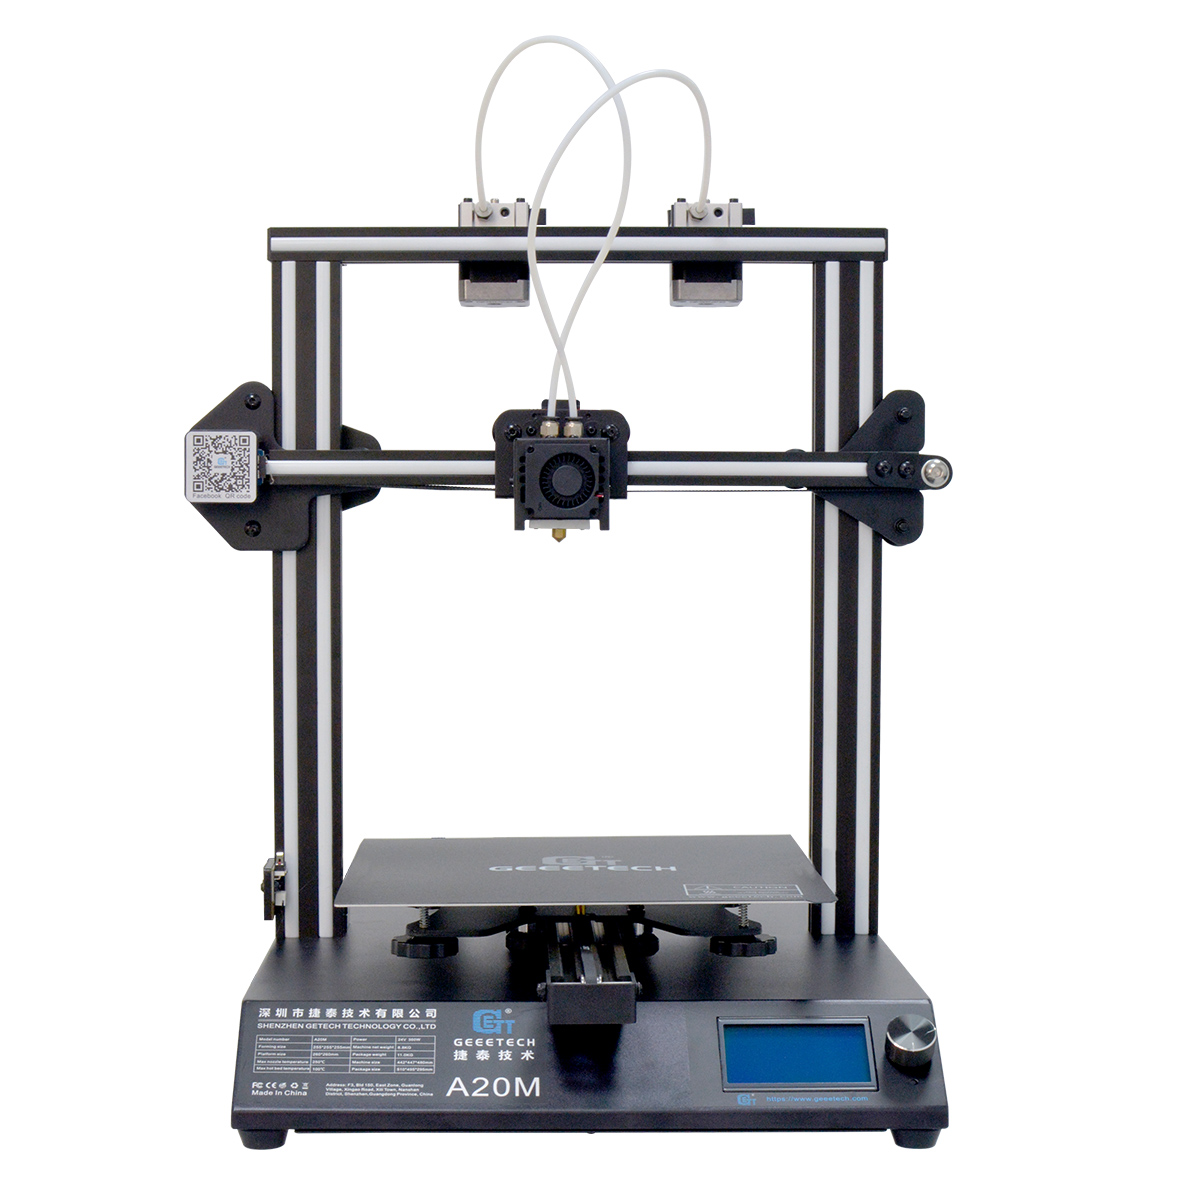 Geeetech A10M 3D Printer 2 Mixing Colors Dual Extruder Newest Version US Send